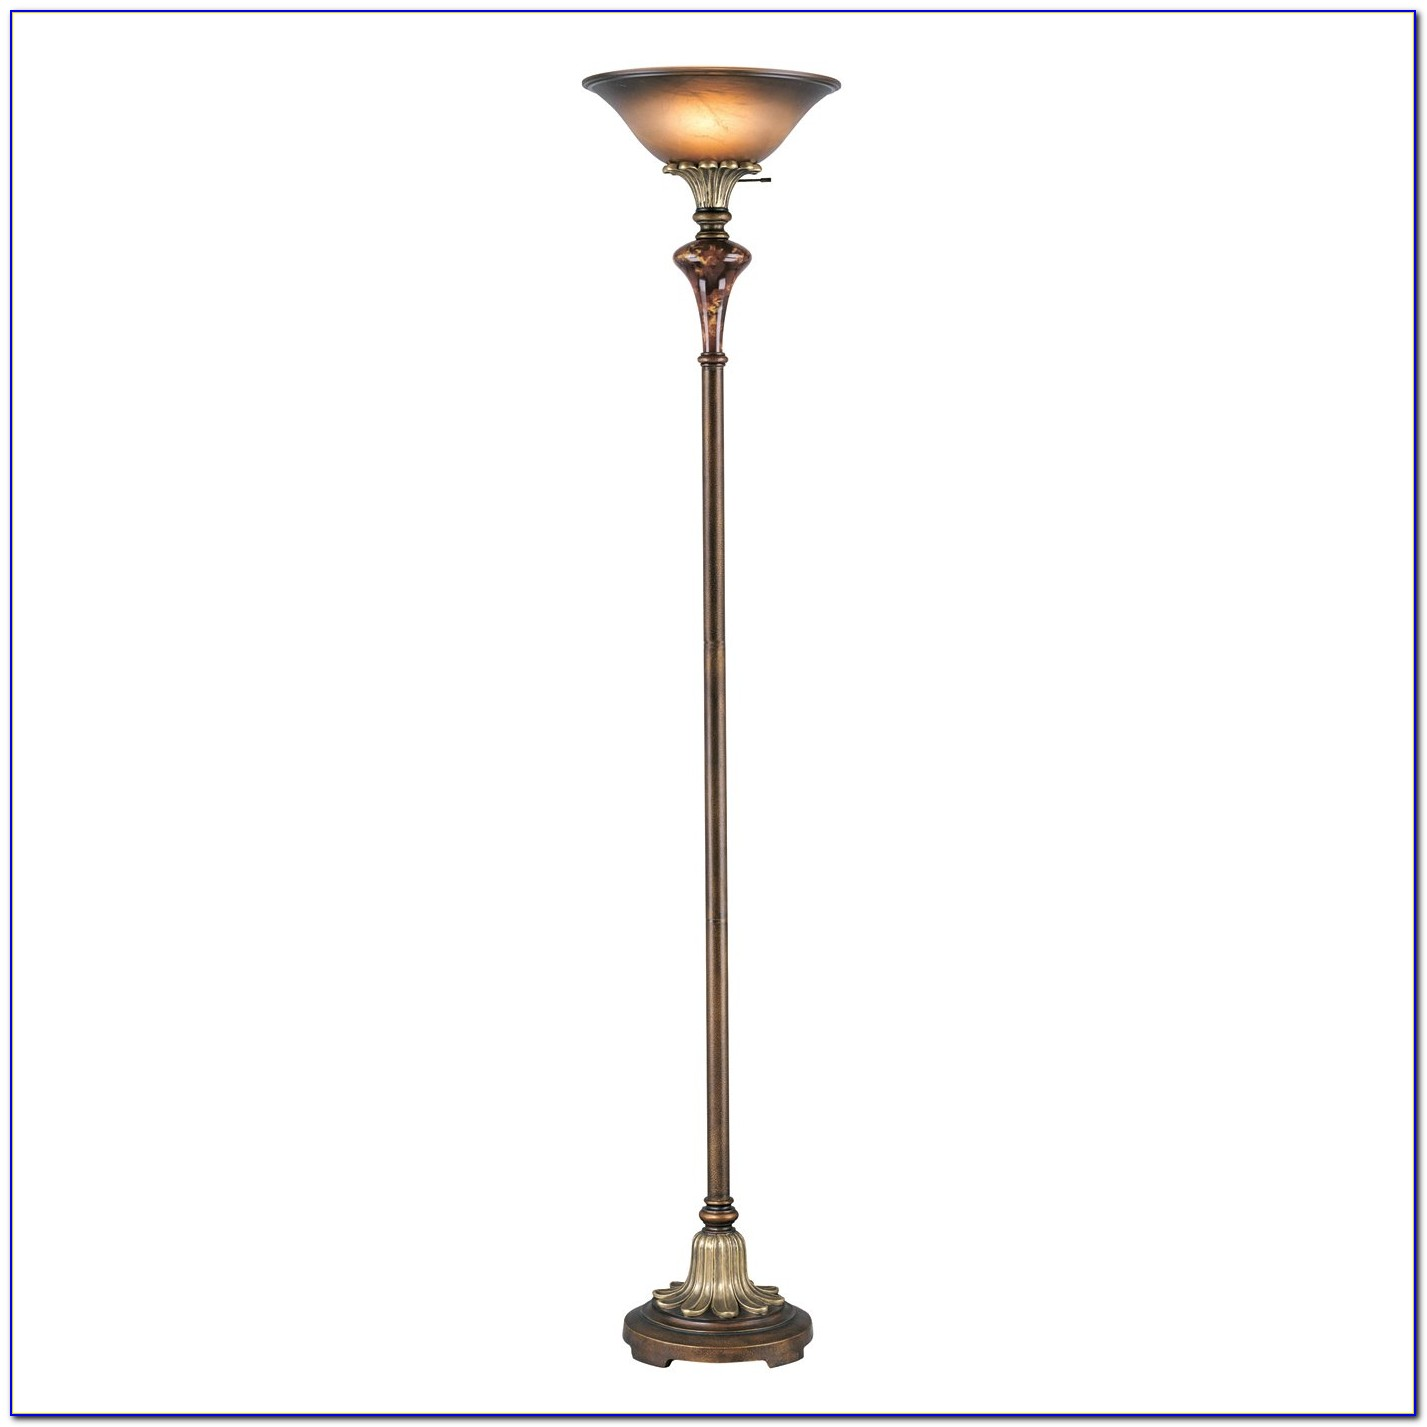 Antique Brass Torchiere Floor Lamp